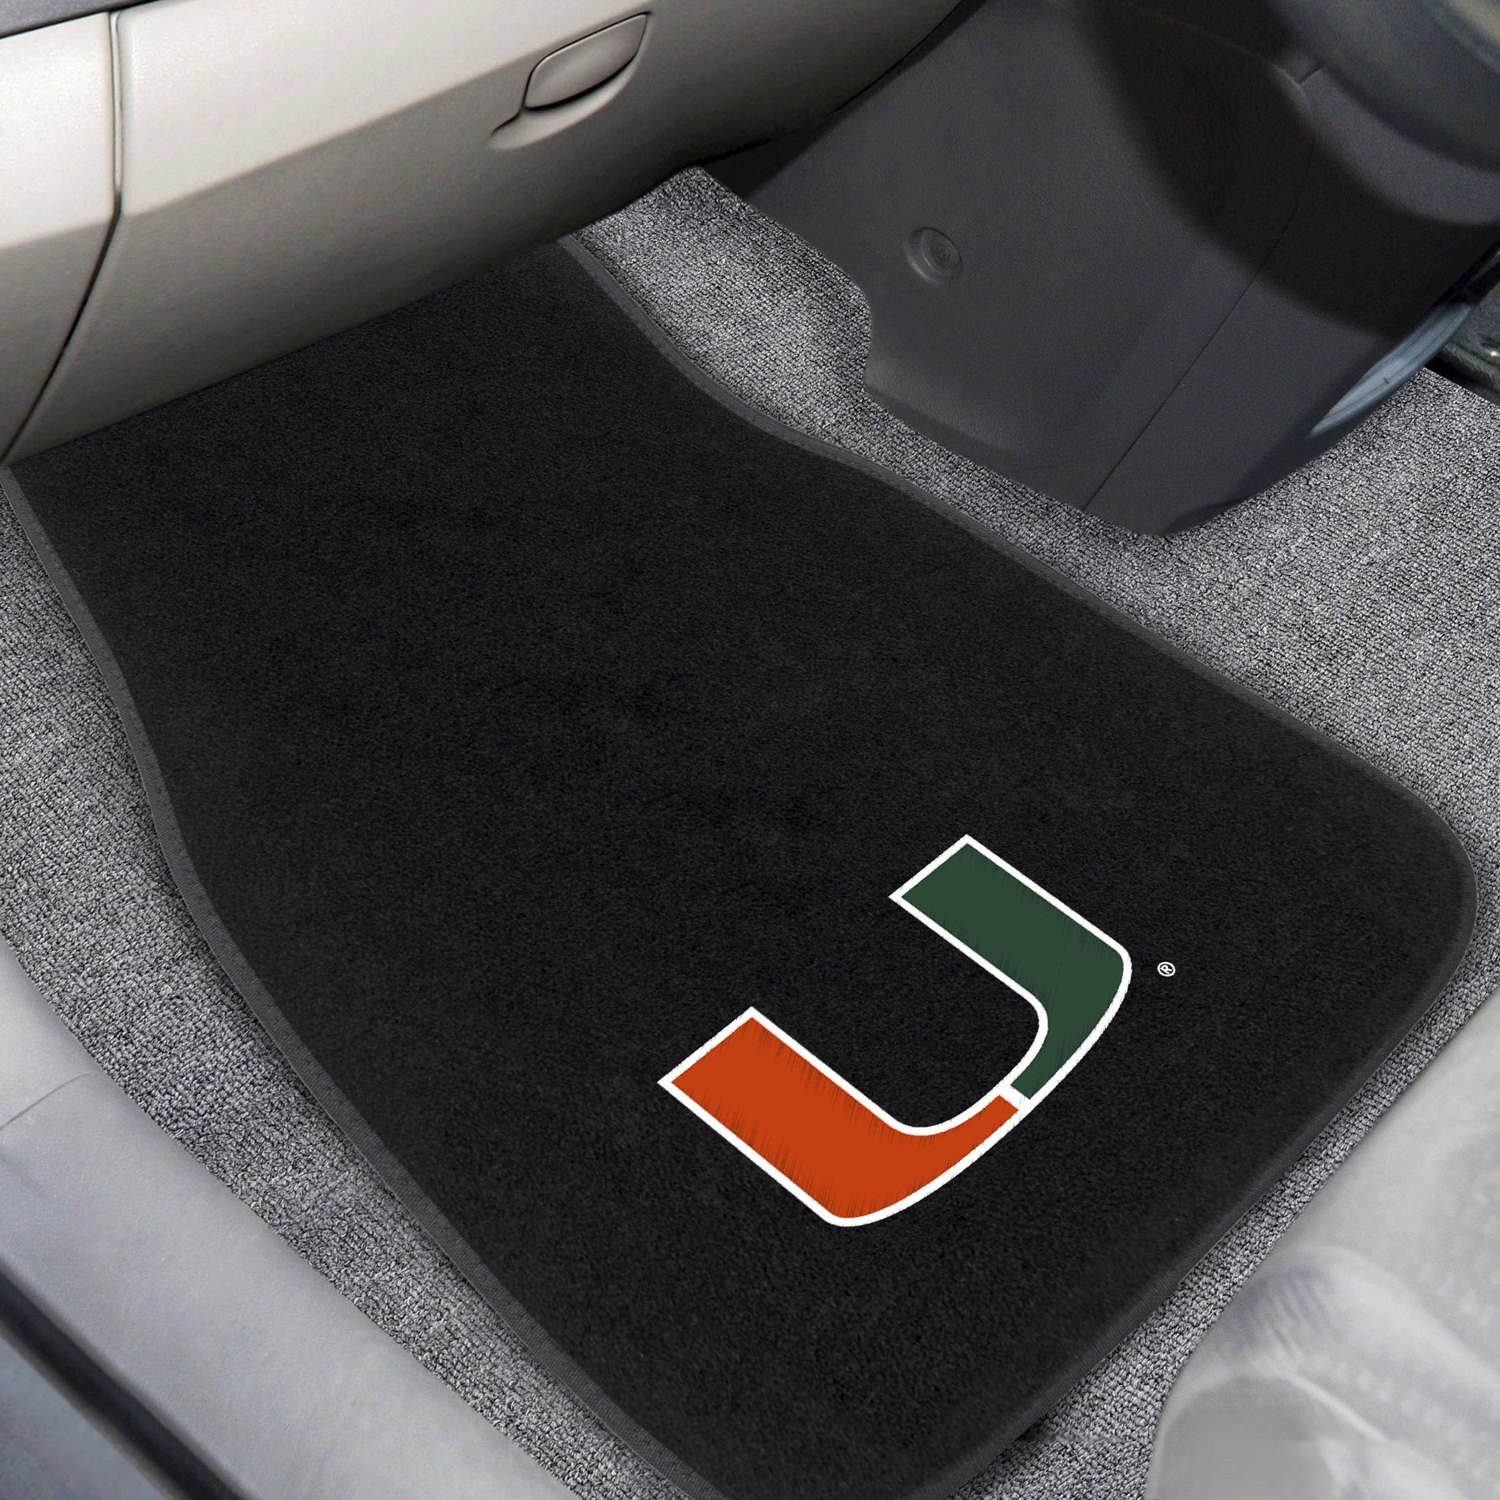 buy cheap FanMats® 20609 - University of Miami Logo on Embroidered Floor Mats for 2015 RAM 1500 TRUCK Ebay & Amazon